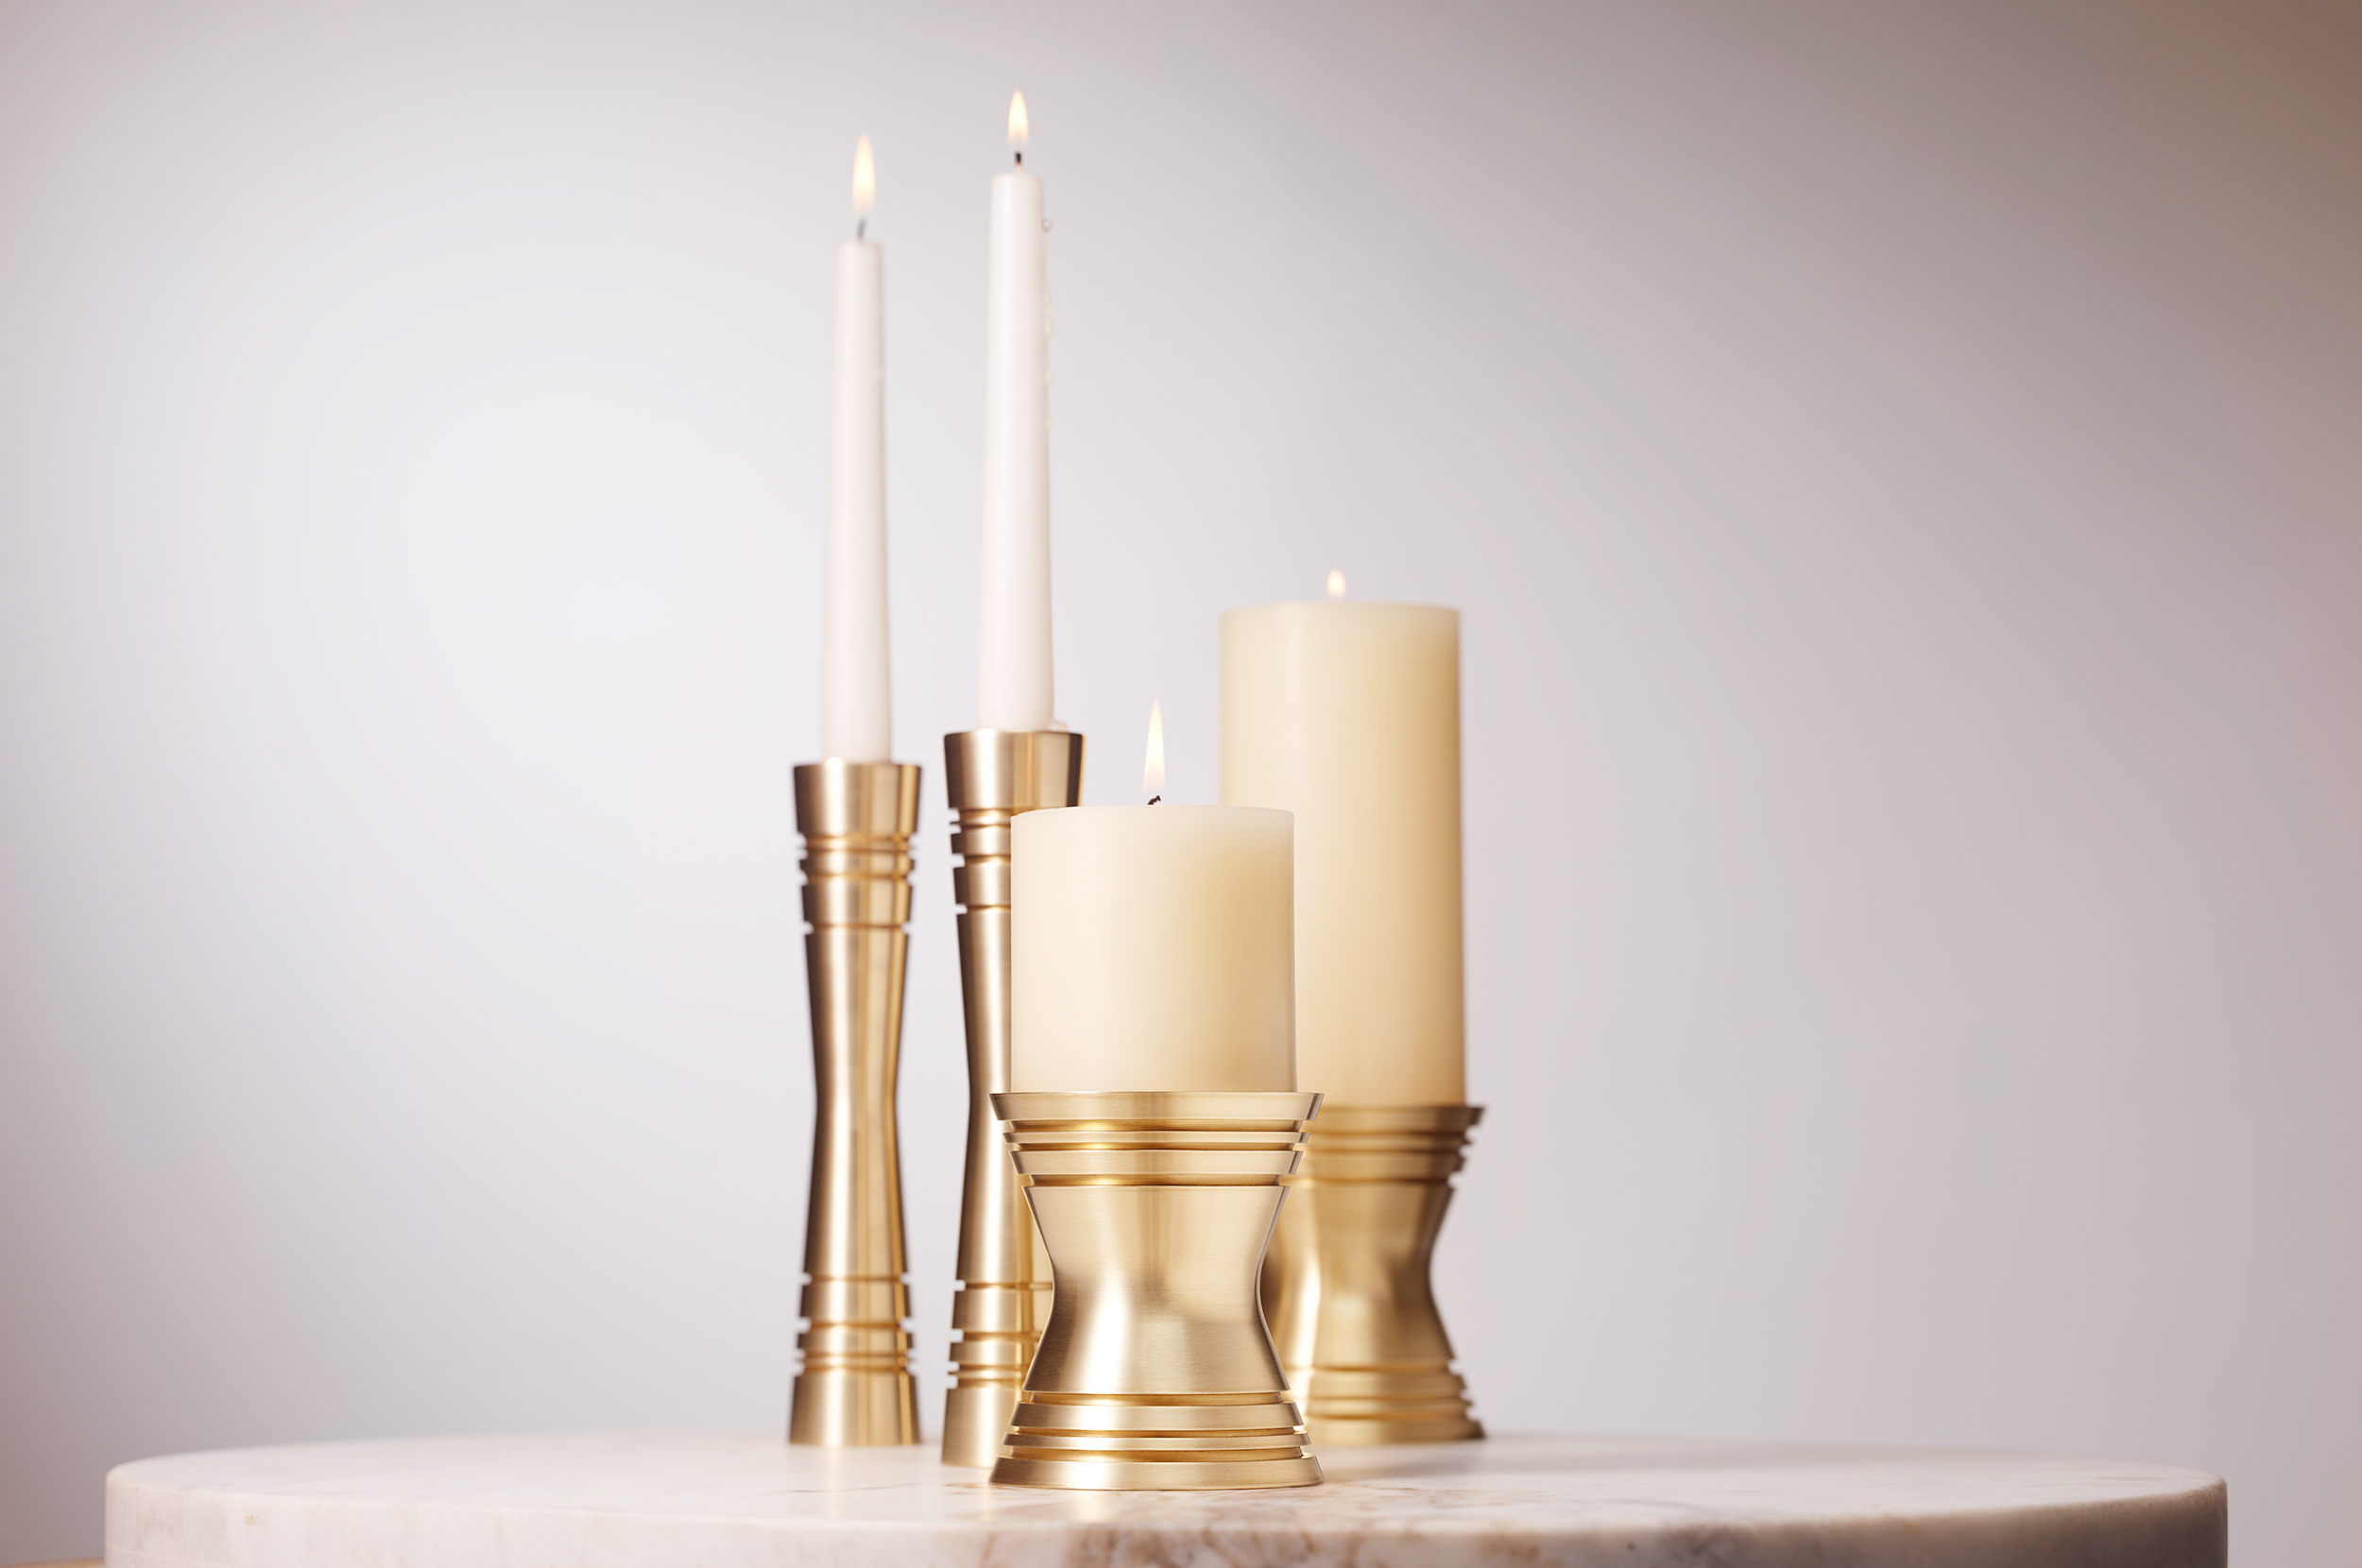 _170106 Post and Gleam table top Candle Holders Tall Short Quad COMP Ob FL LR.jpg